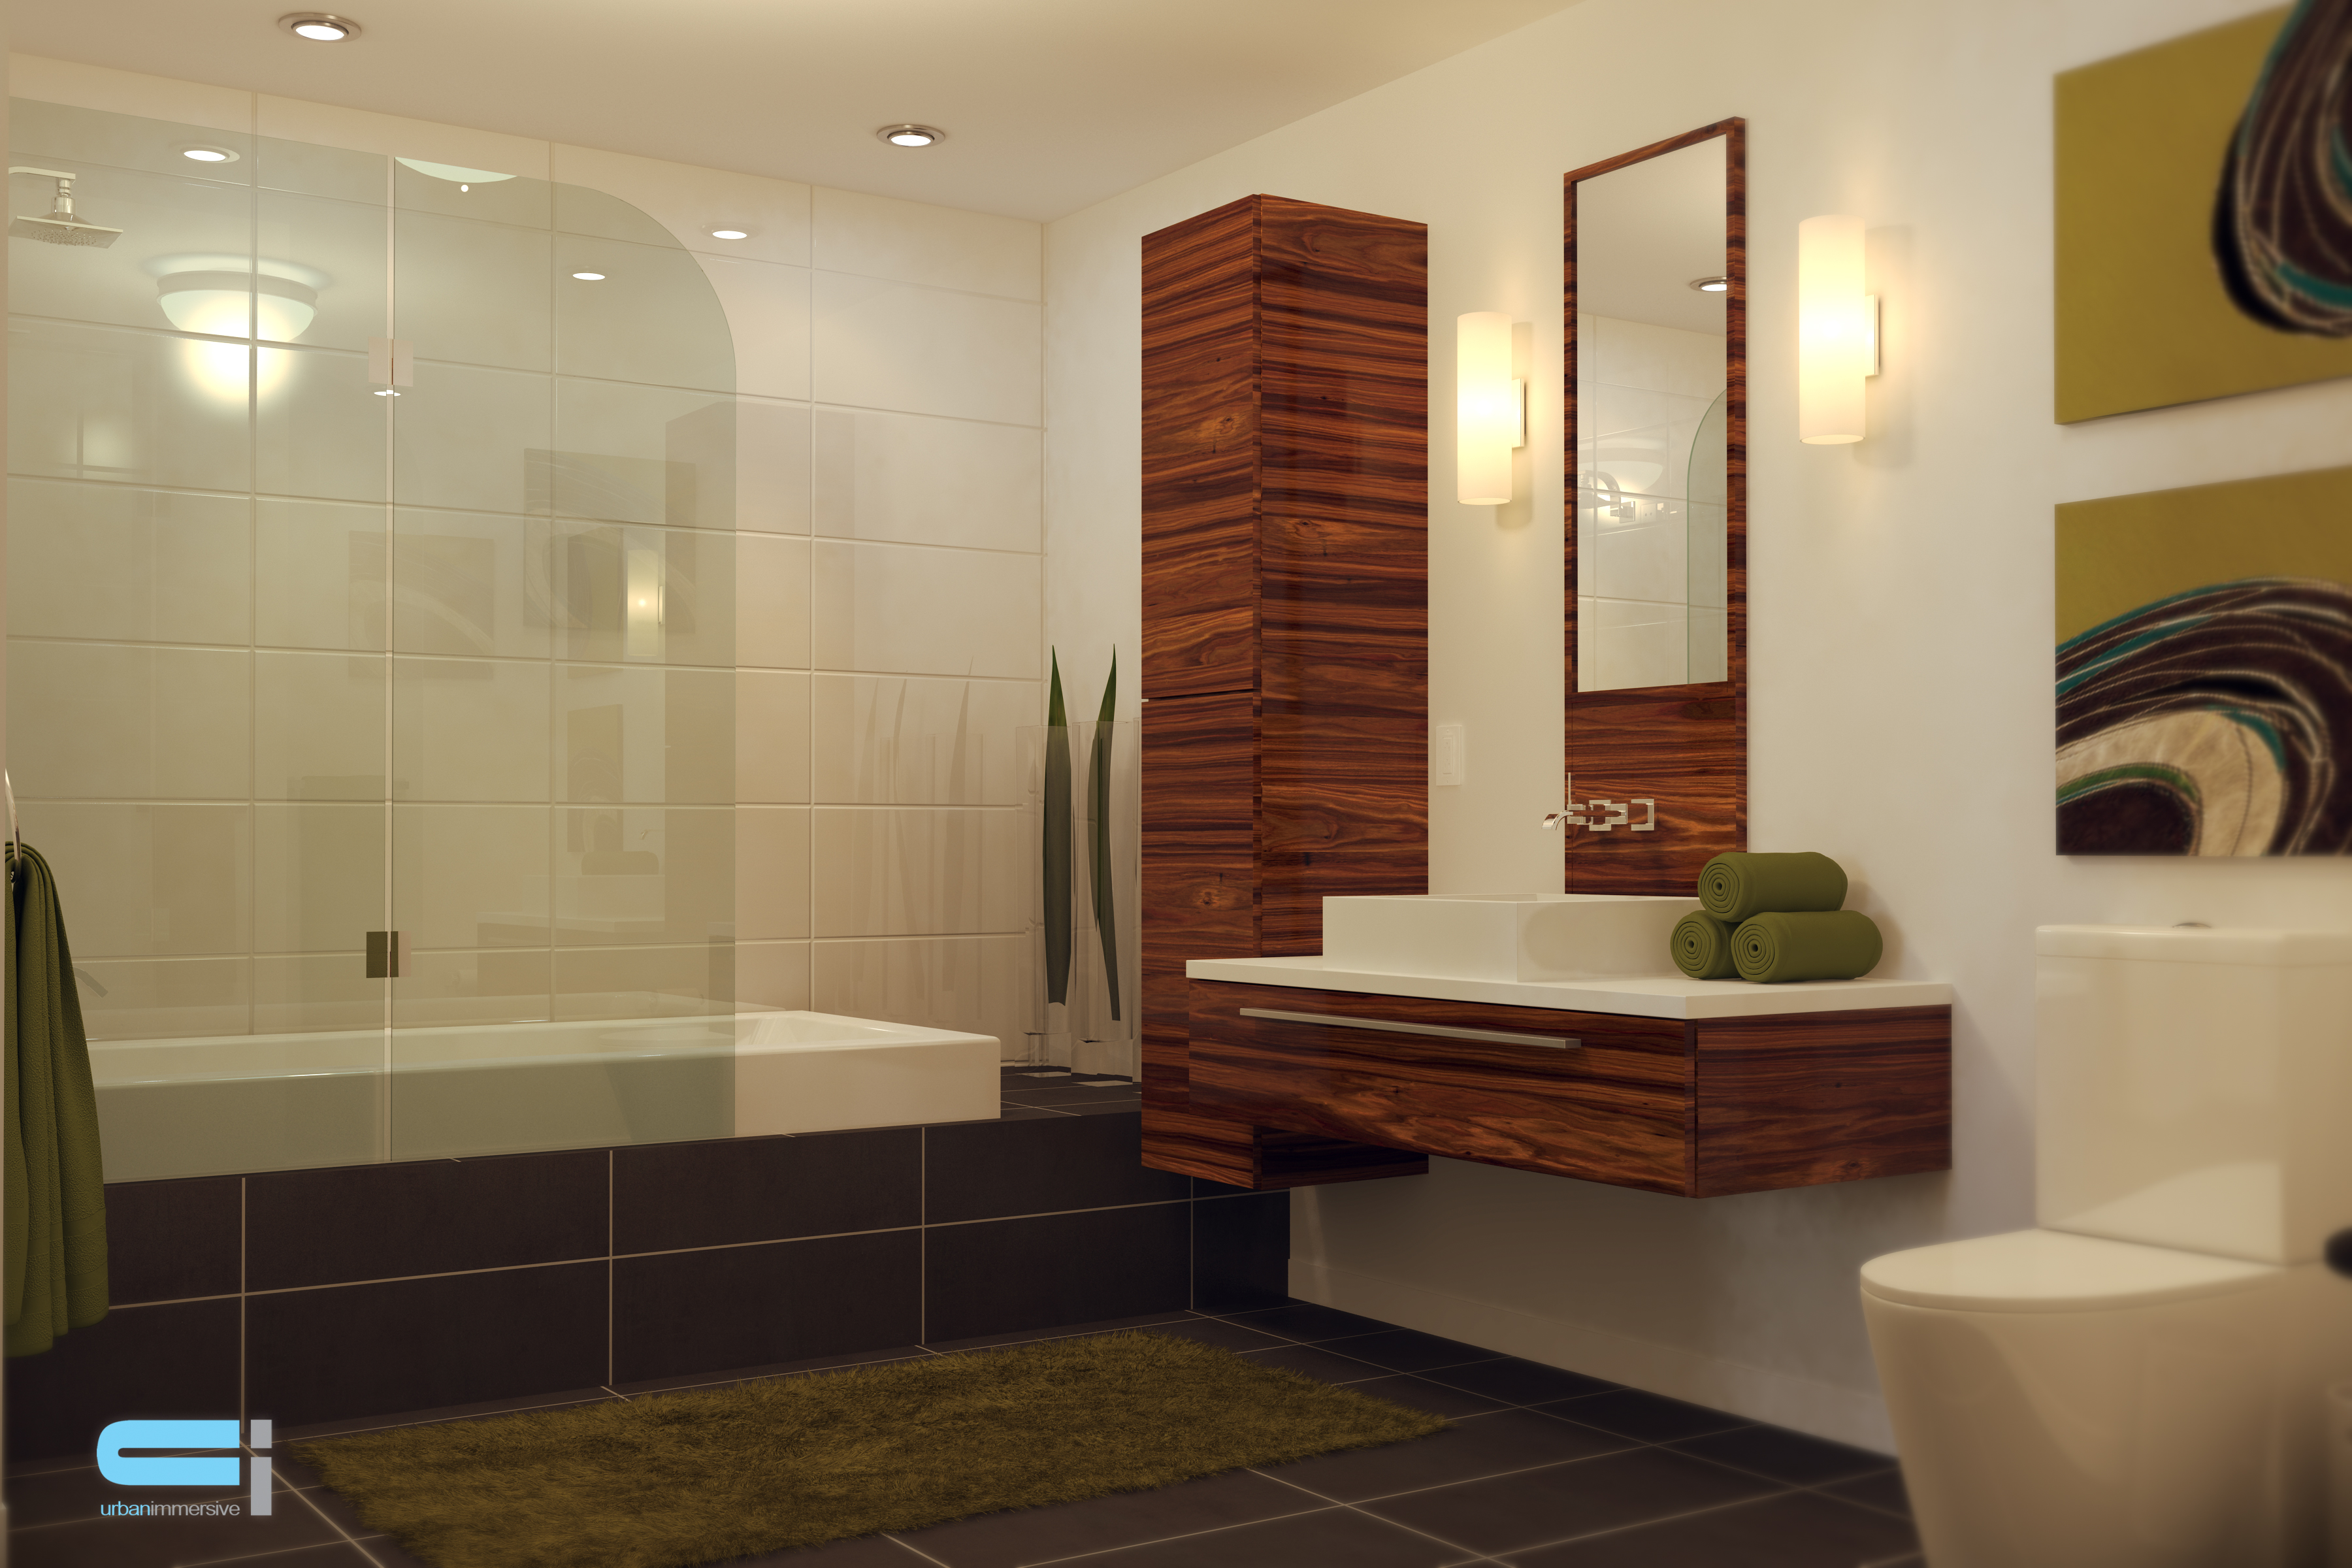 petit guide pour une salle de bain wow. Black Bedroom Furniture Sets. Home Design Ideas